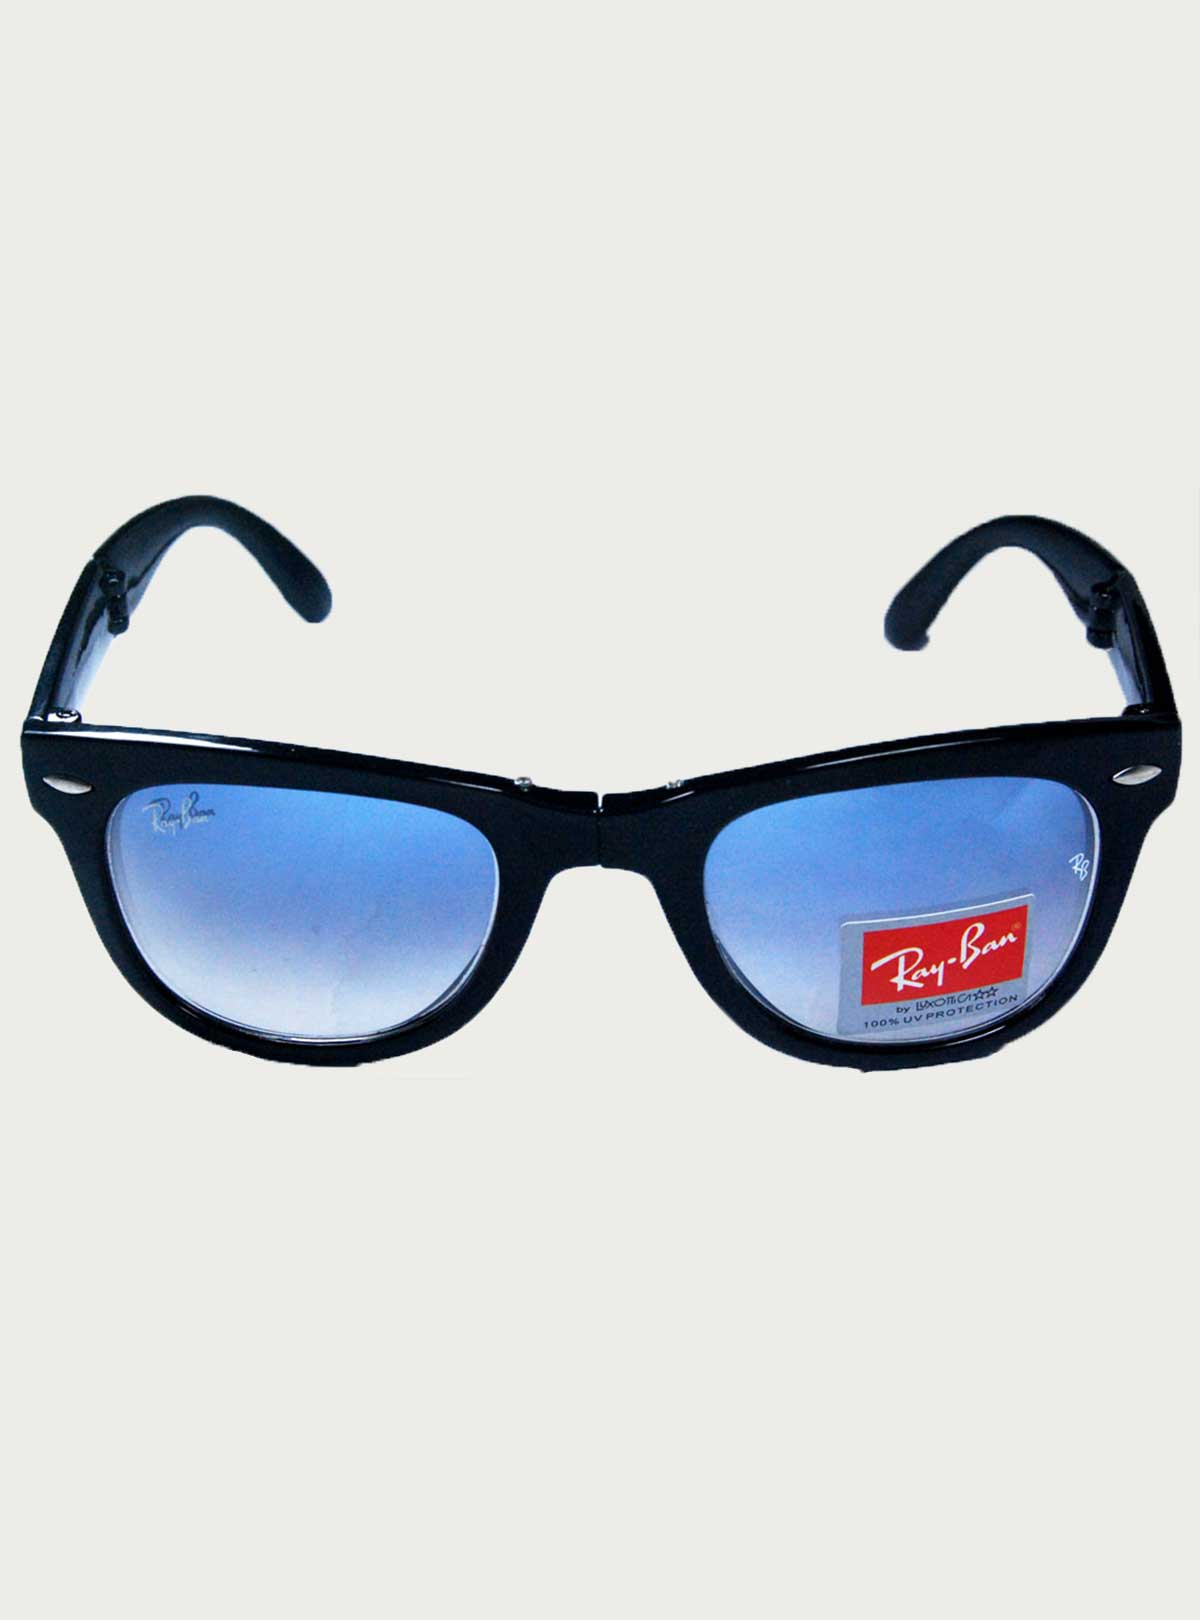 Ray.Ban Black-Blue Folding Sunglass